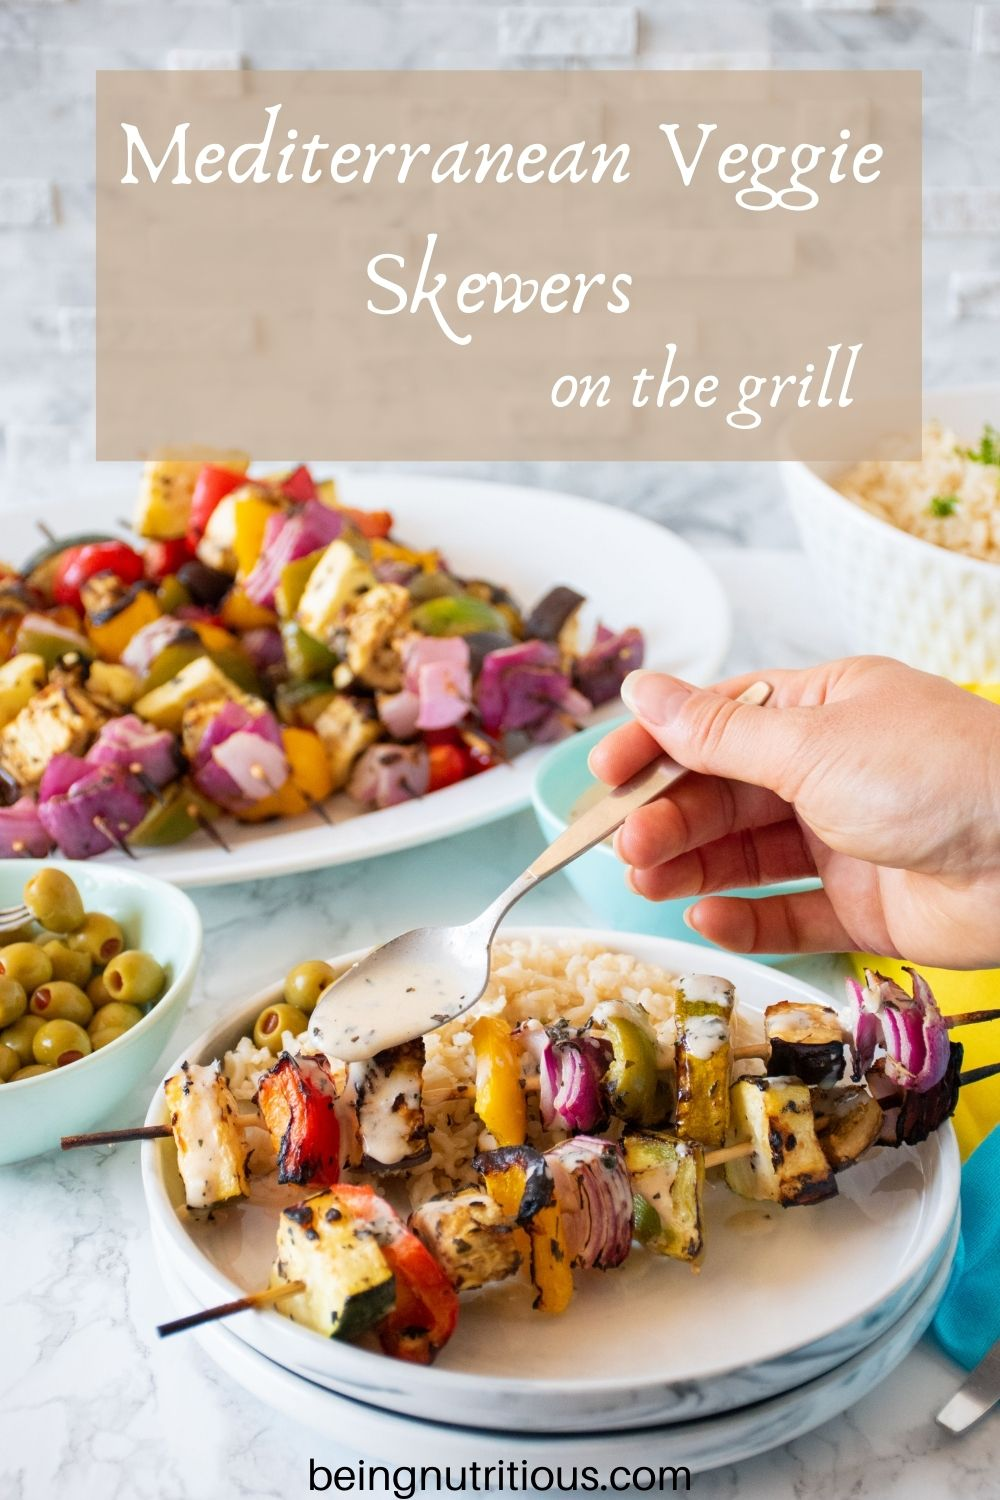 Plate with 2 veggie skewers and rice, with marinade being drizzled over. Text overlay: Mediterranean Veggie Skewers on the grill.